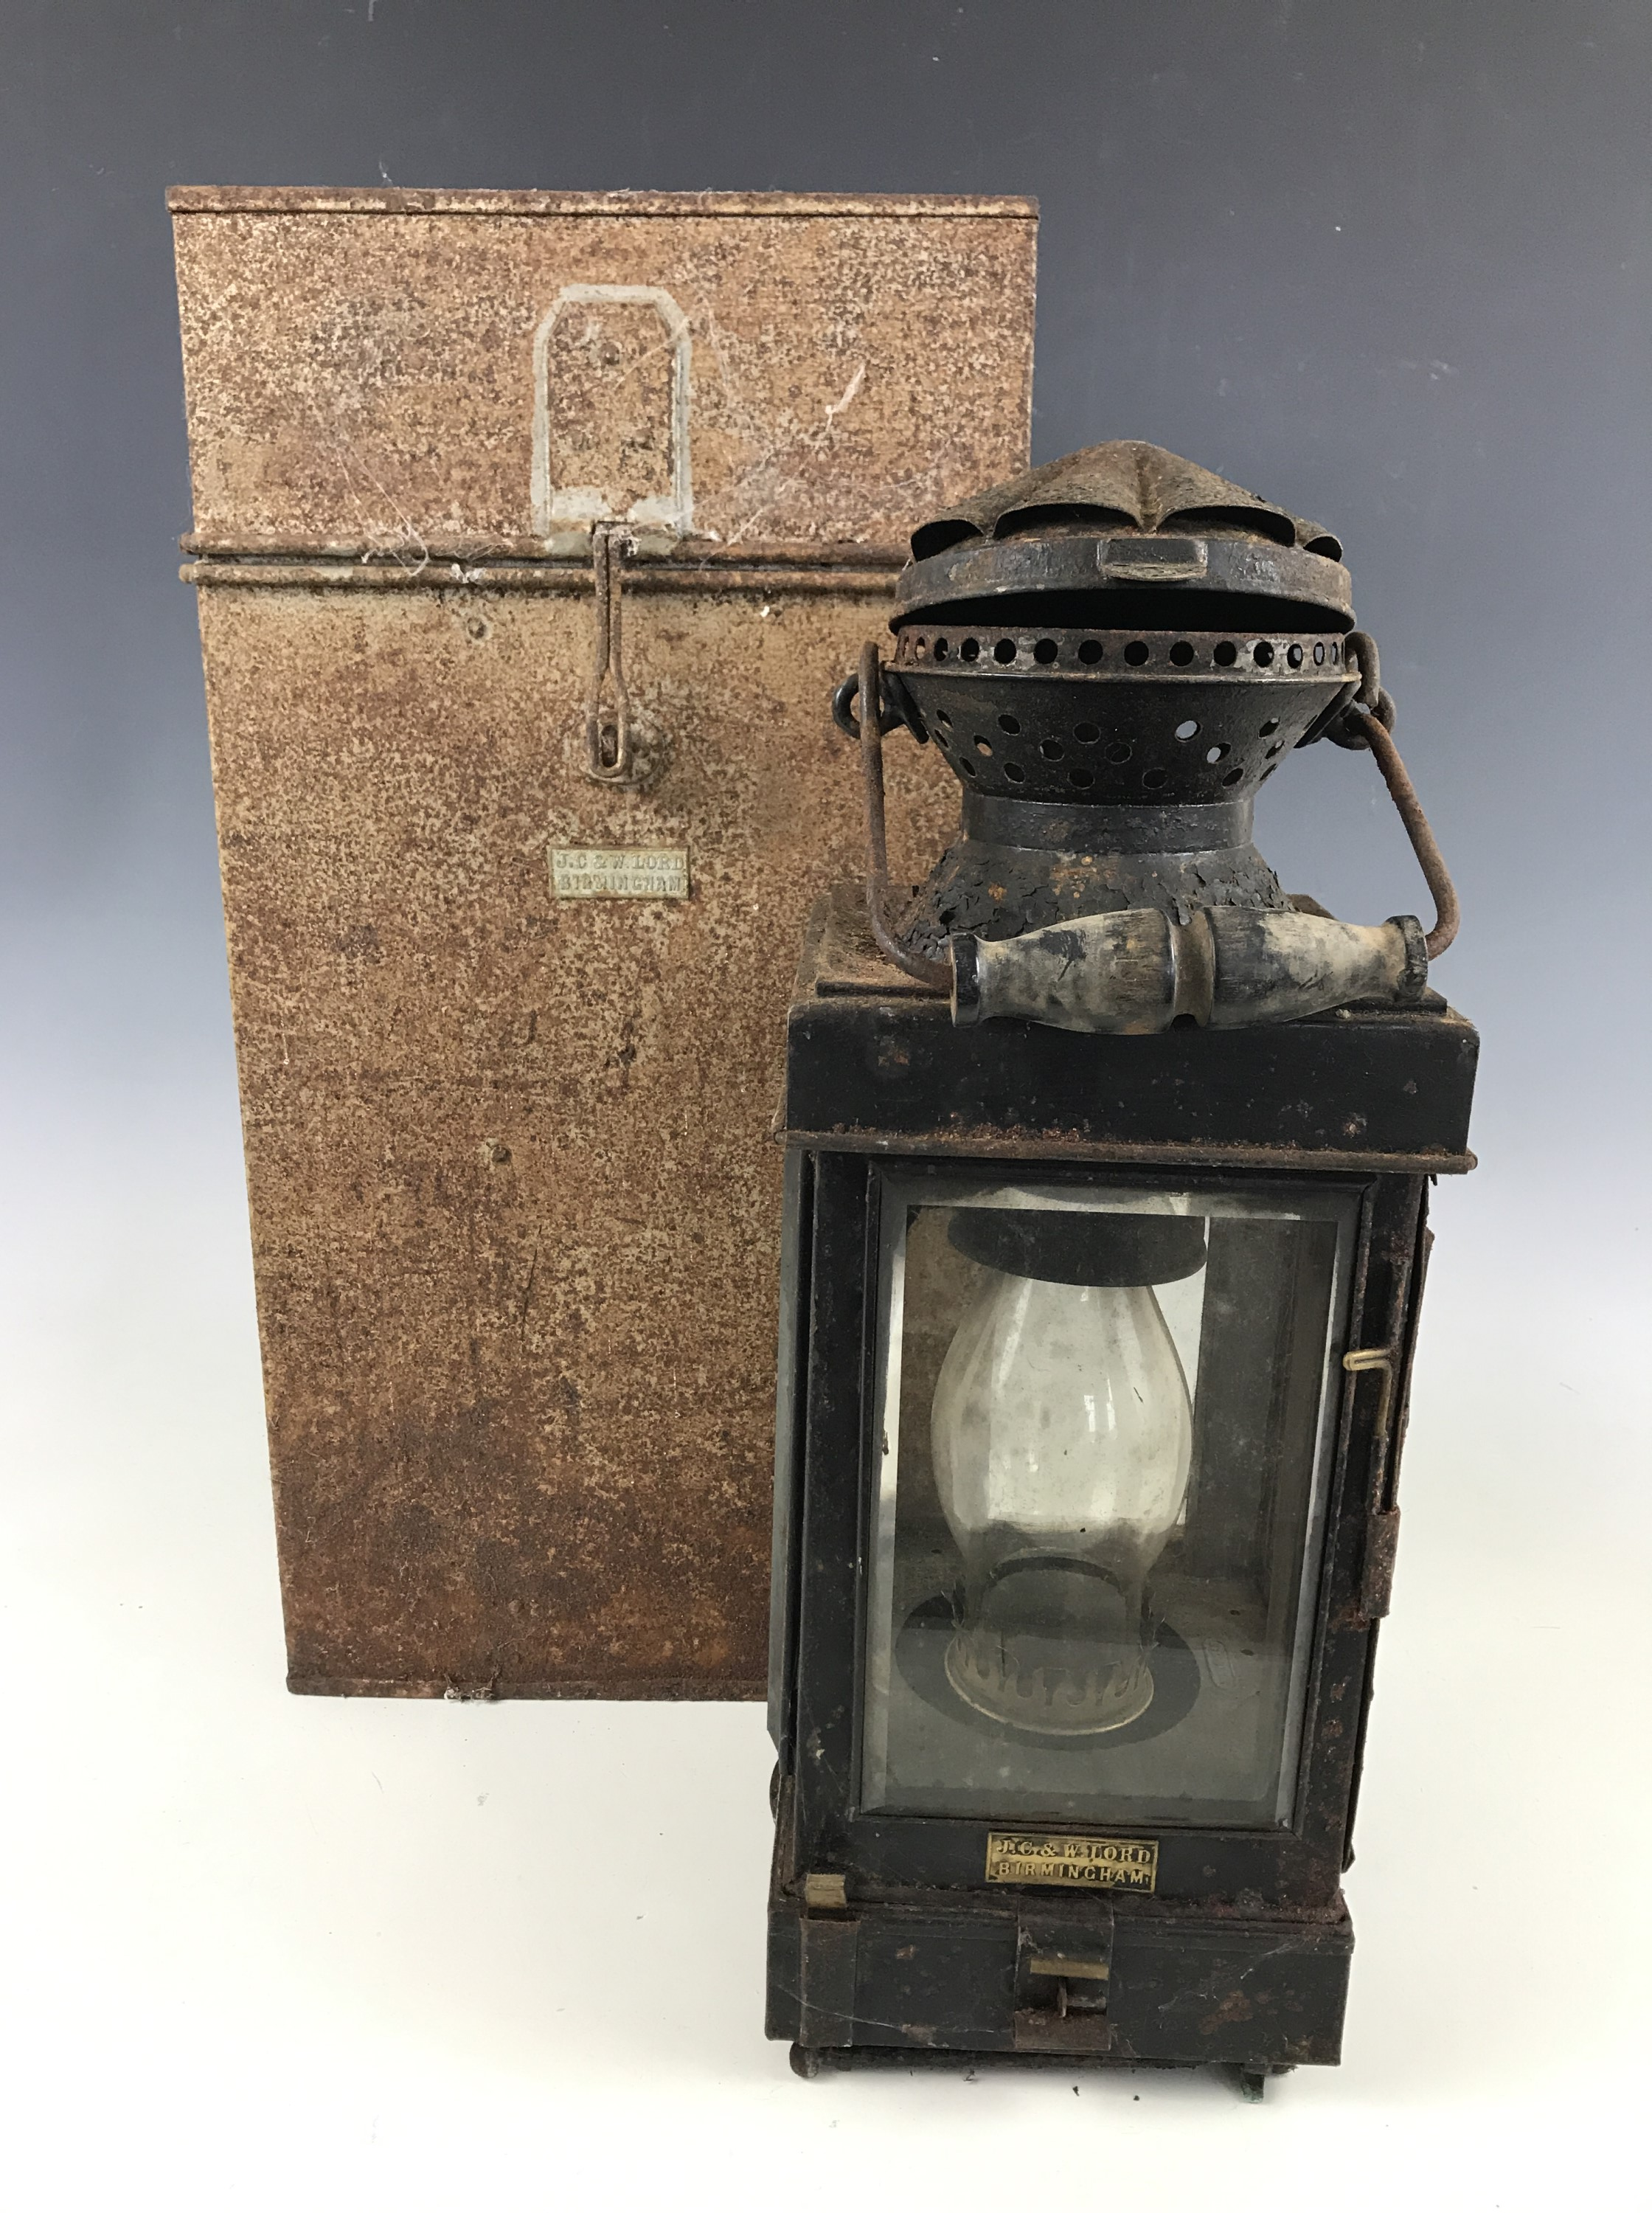 Lot 14 - A Victorian campaign paraffin / oil lamp by J C & W Lord of Birmingham, in tinplate transit case